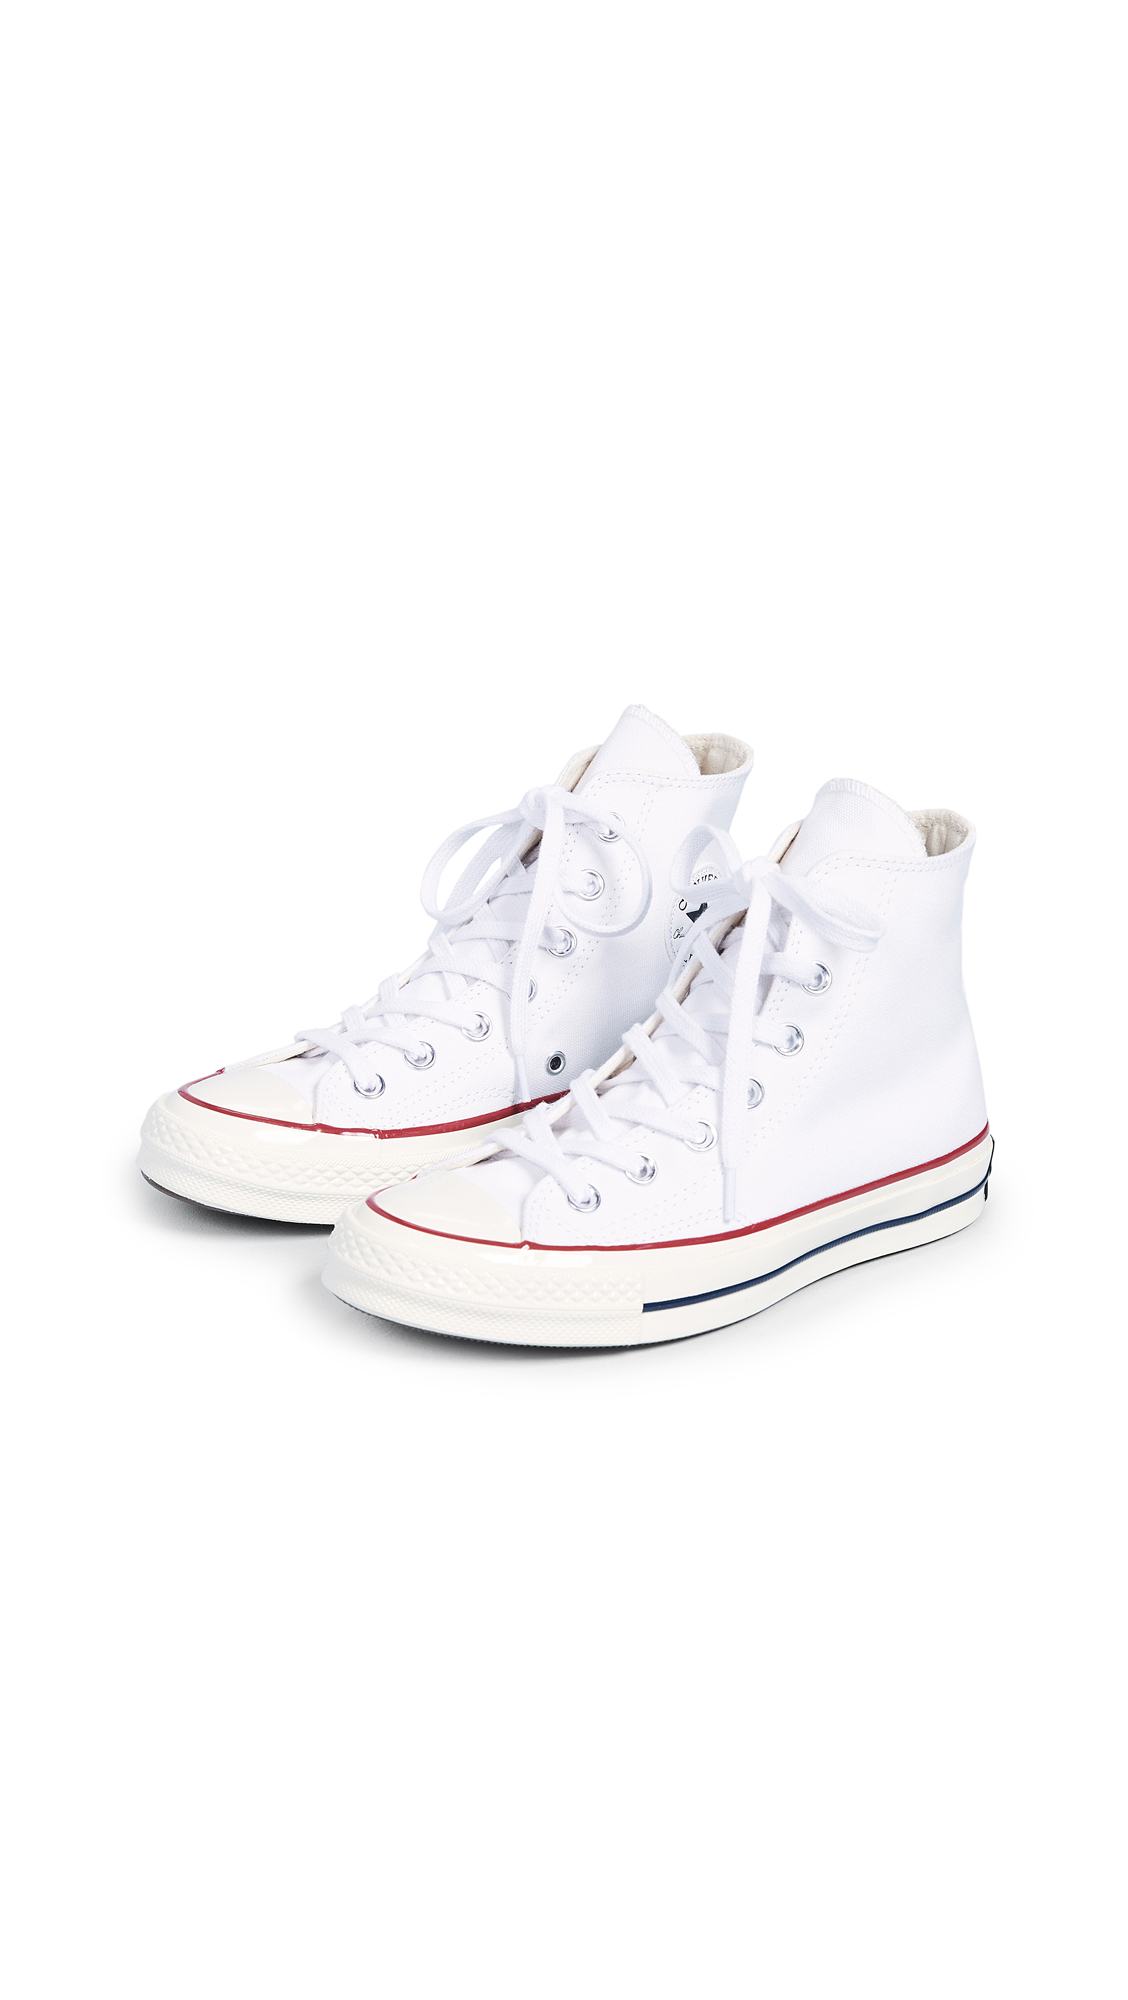 Converse All Star 70s High Top Sneakers - White